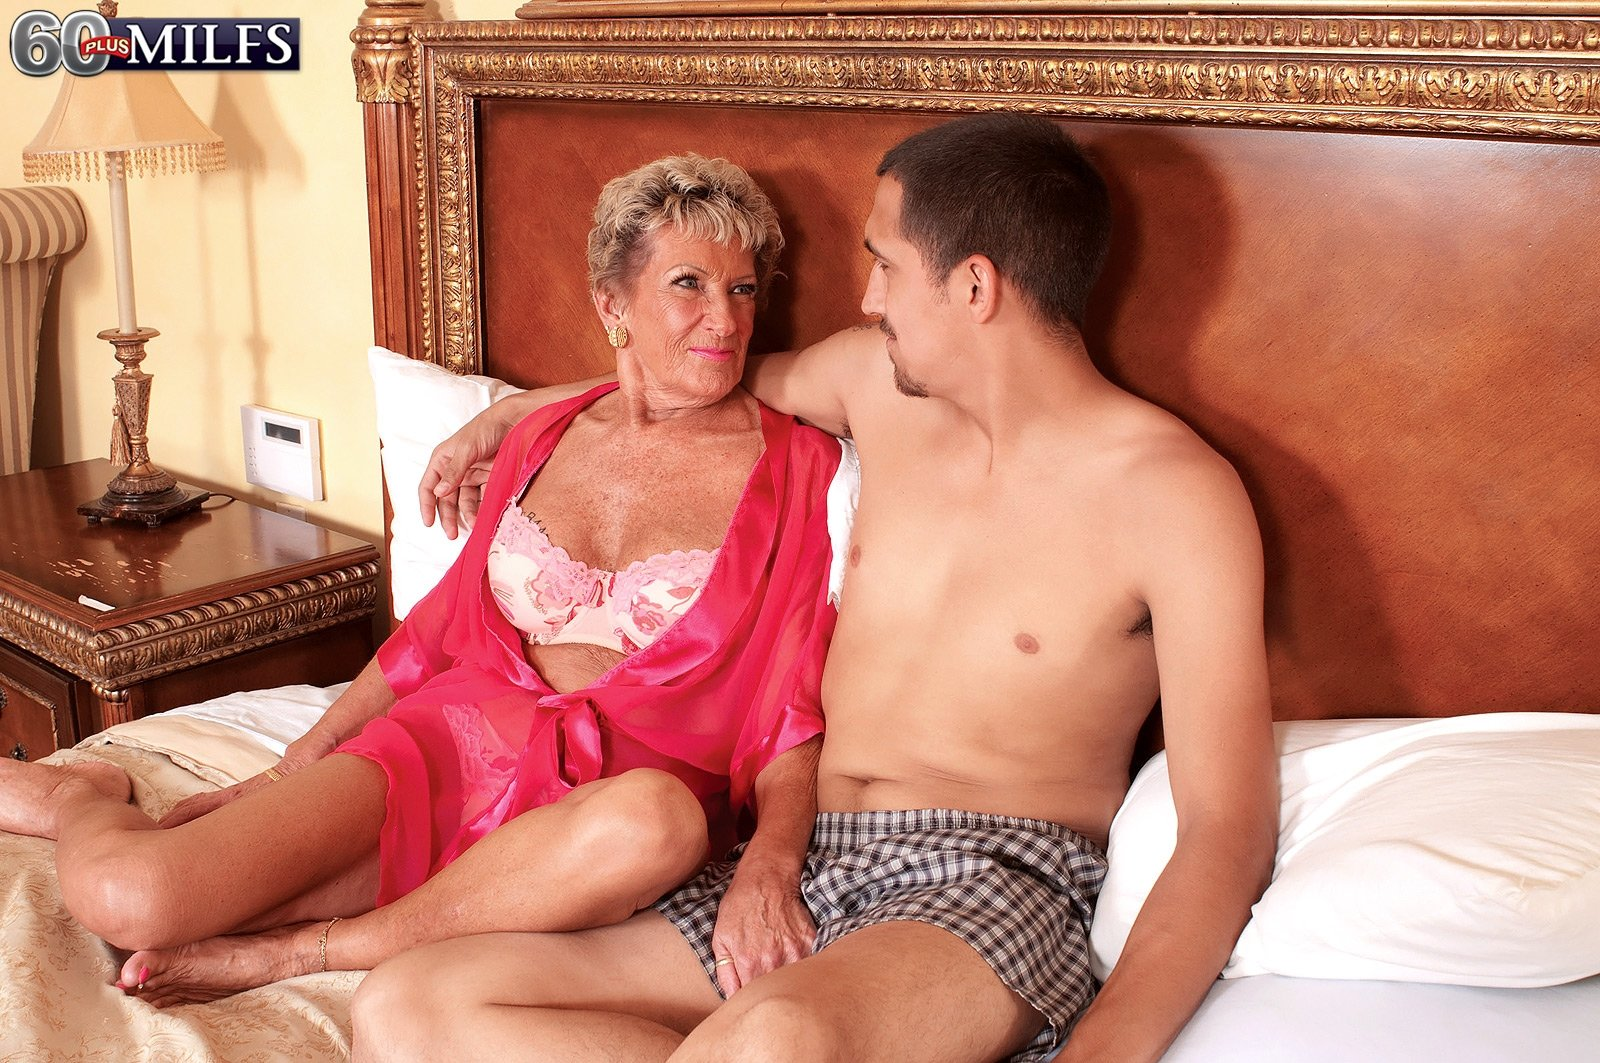 Old granny slave Amateur audition free gallery pic sexy